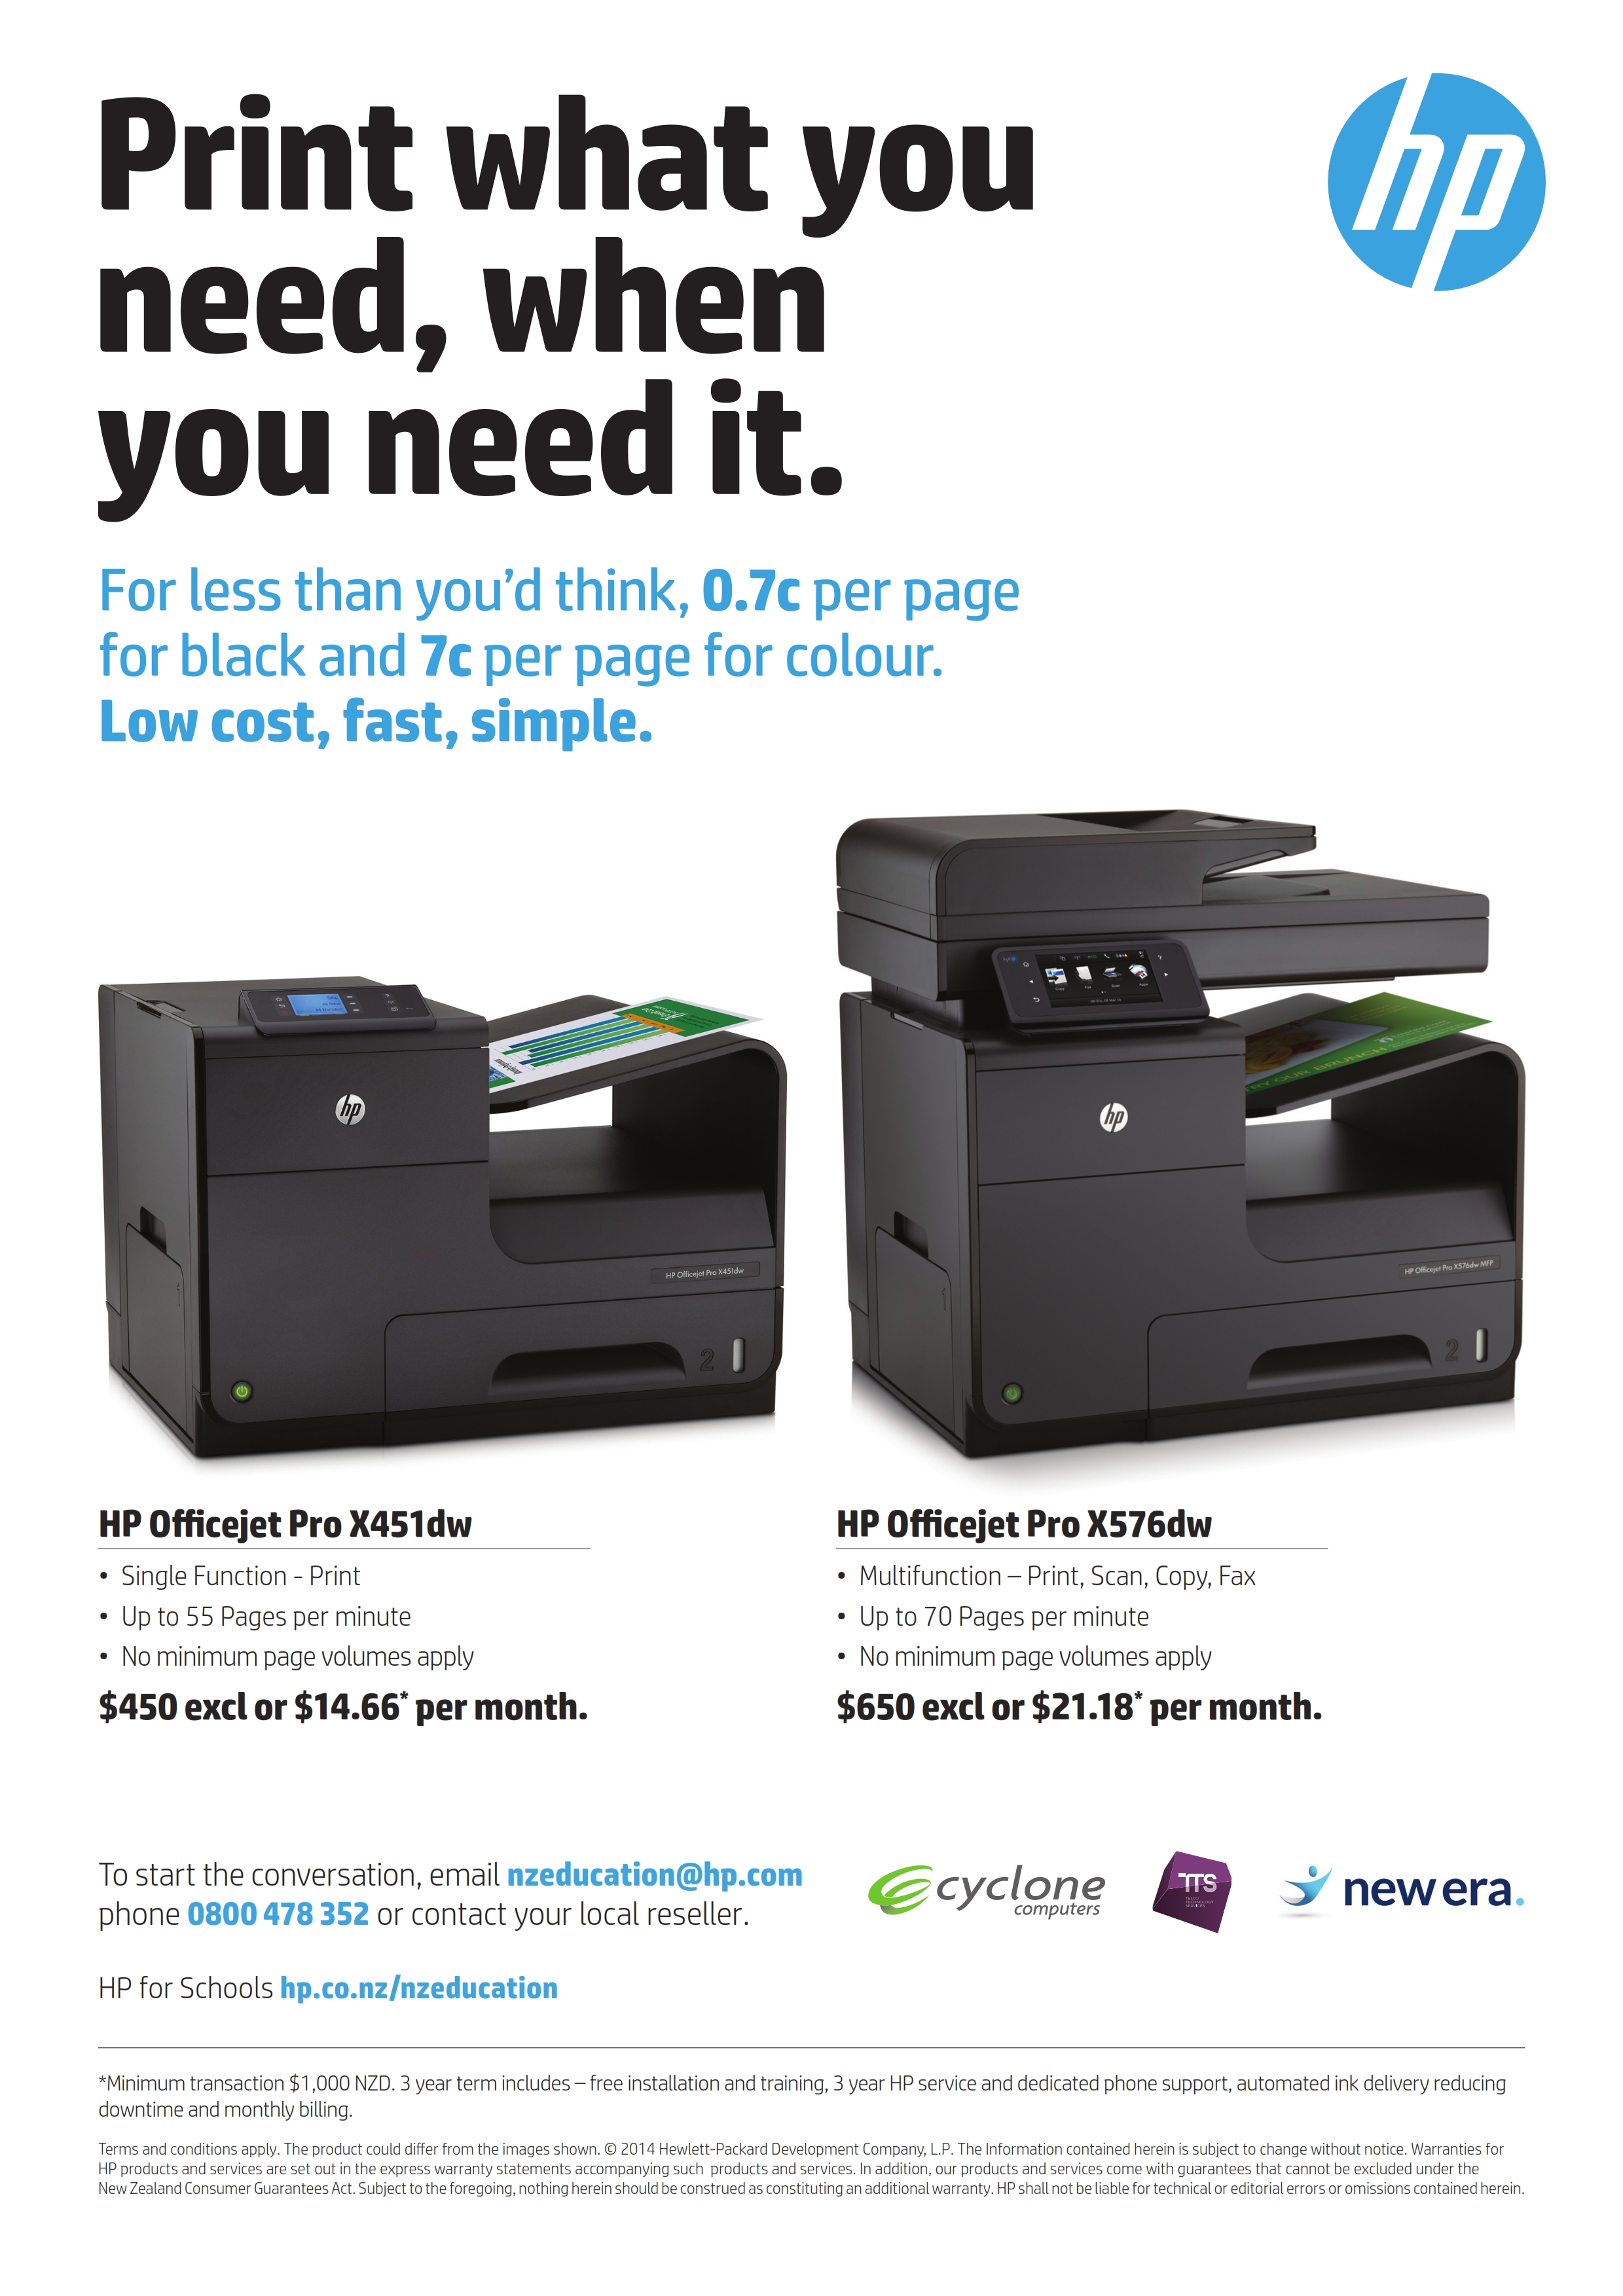 Qa Hps Managed And Mobile Printing Solutions Ink Free Photo Printer Technology